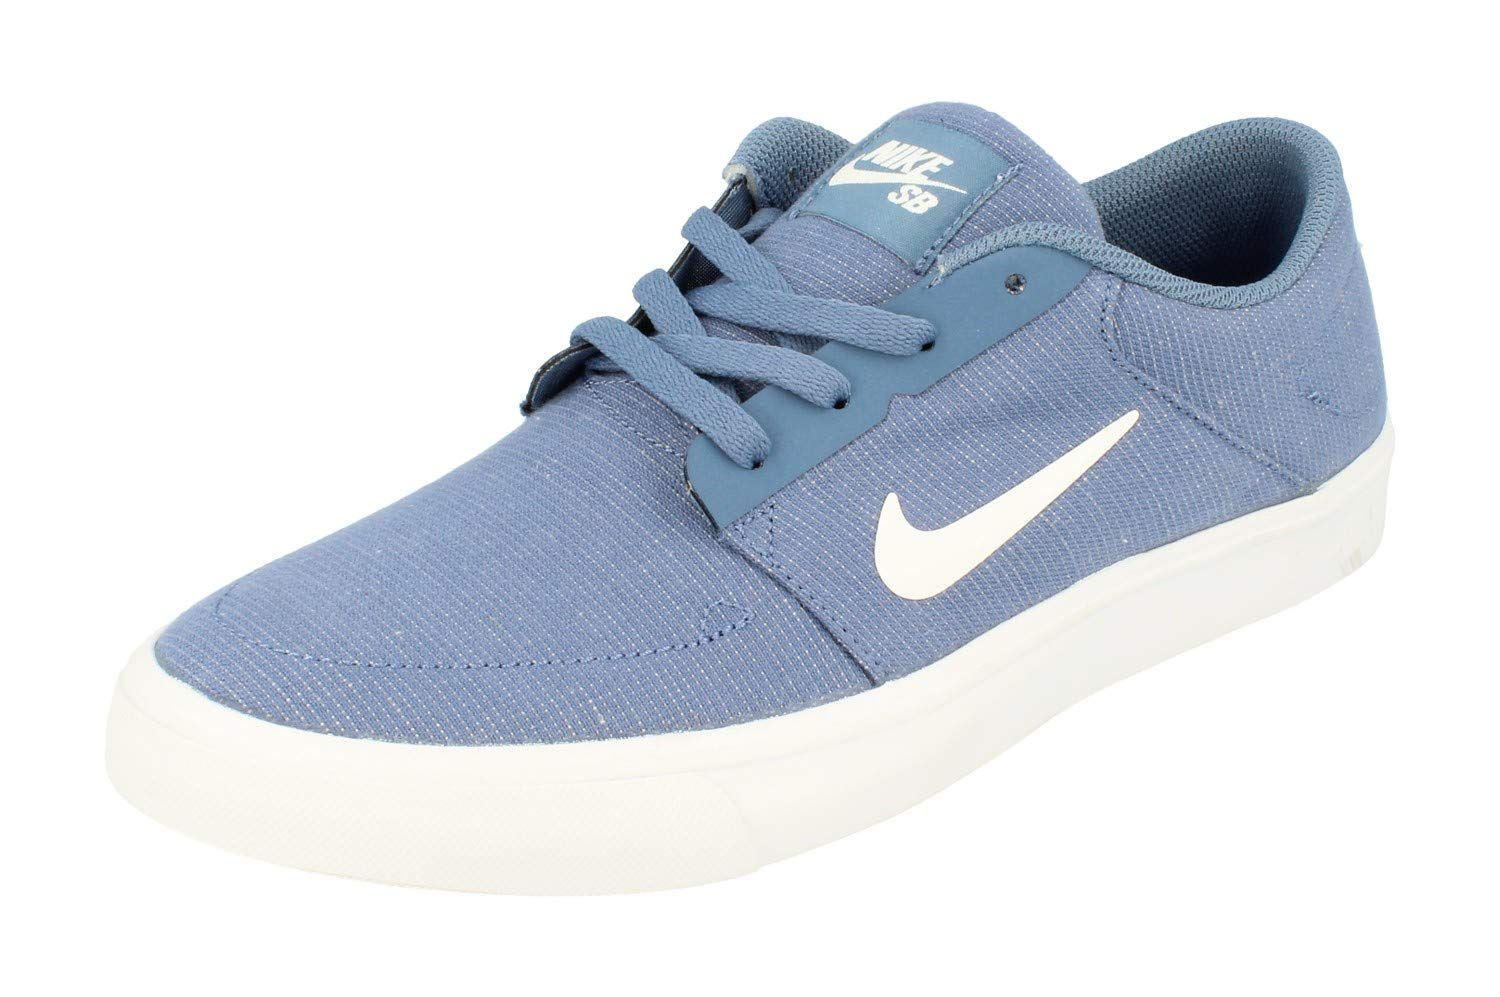 6c9473c1f48fcd Galleon - NIKE SB Portmore Canvas Mens Trainers 723874 Sneakers Shoes (UK 6  US 7 EU 40, Ocean Fog White 401)